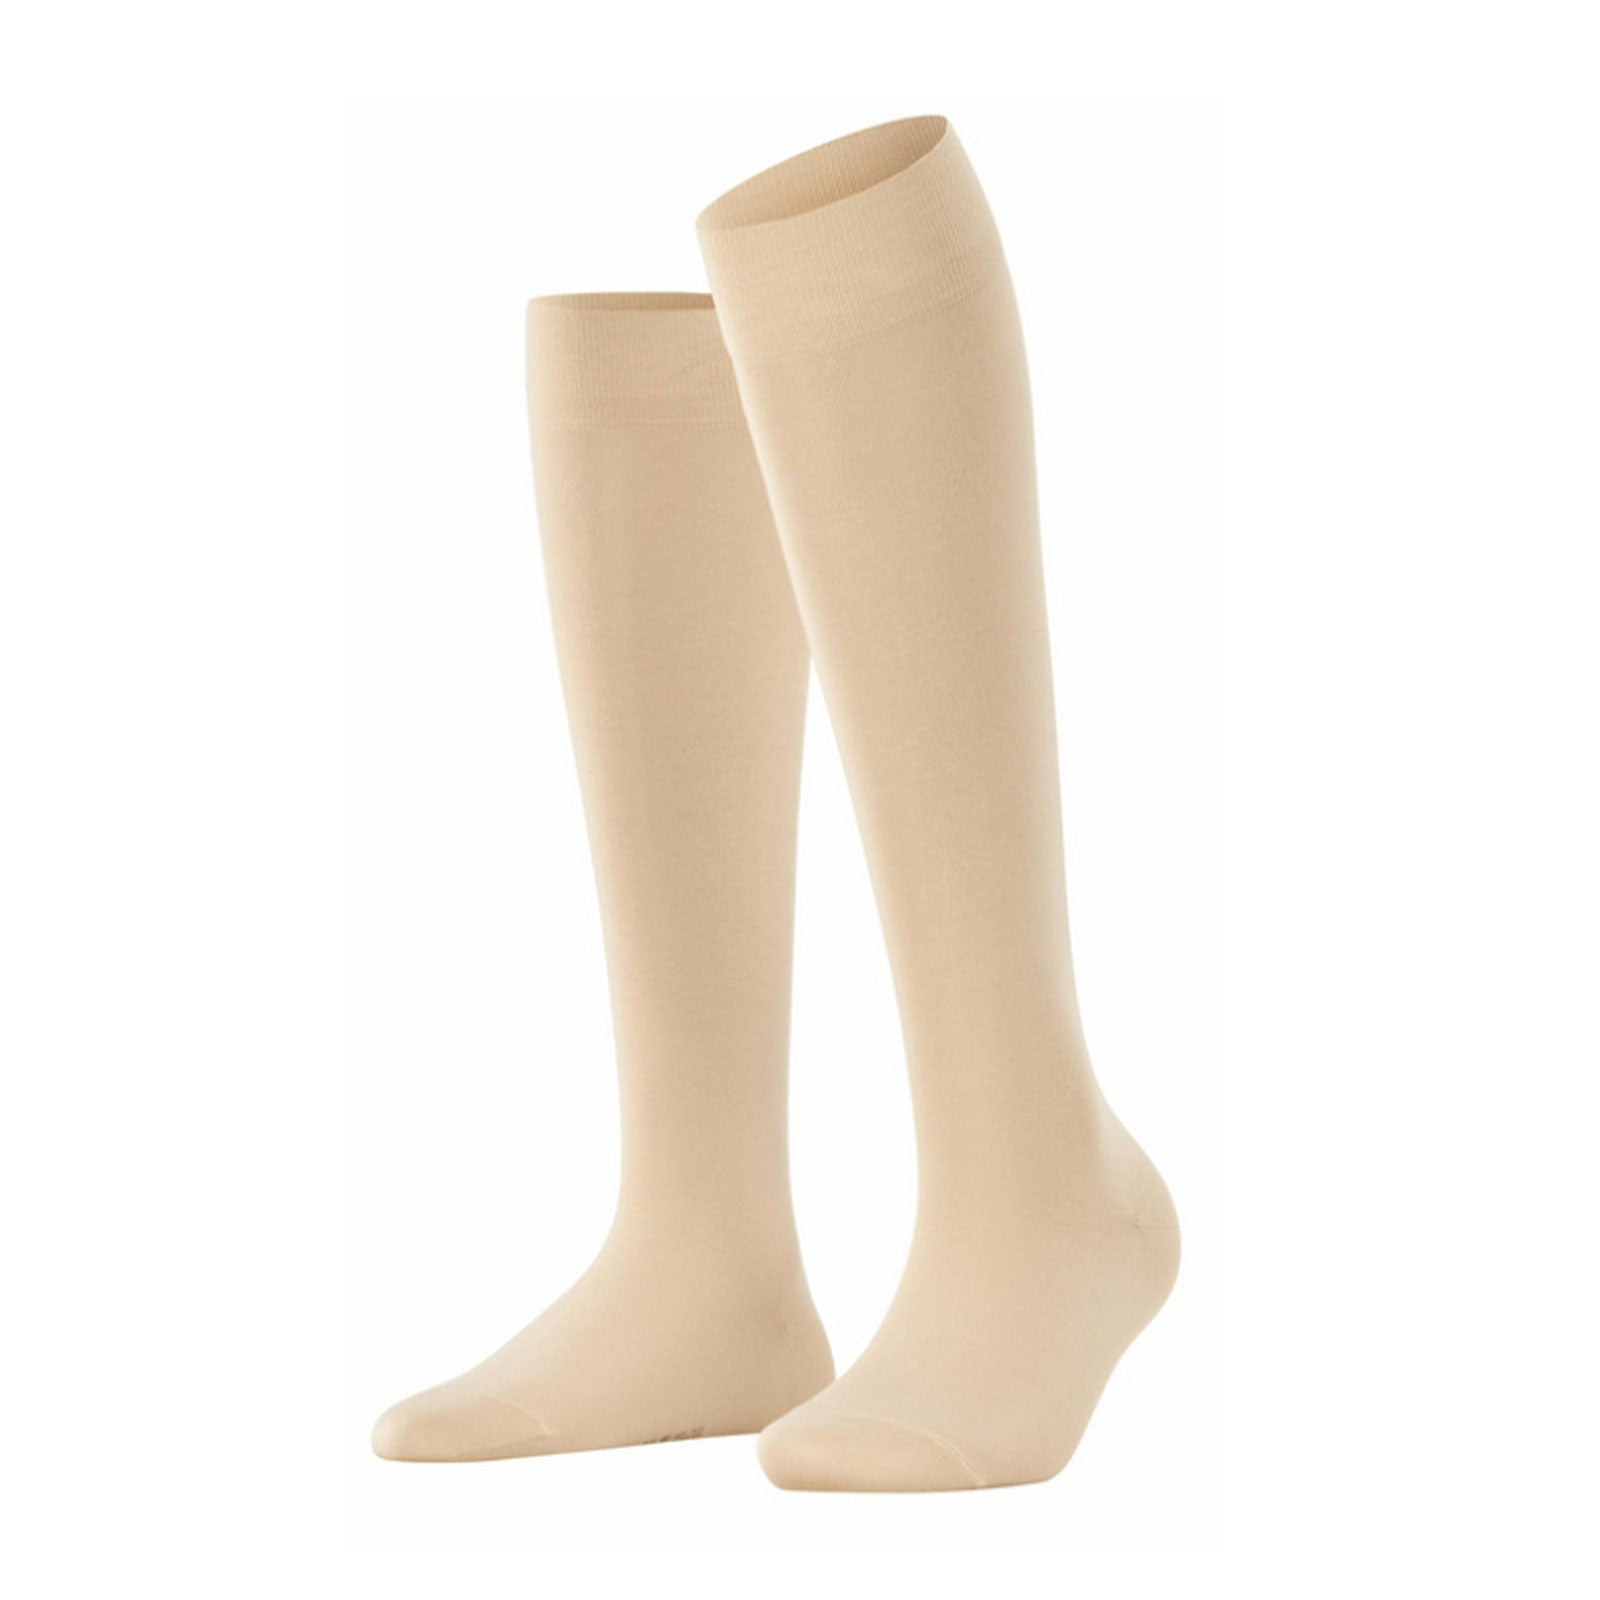 Falke Cotton Touch (Women) - Cream Socks|Life - Crew - The Heel Shoe Fitters